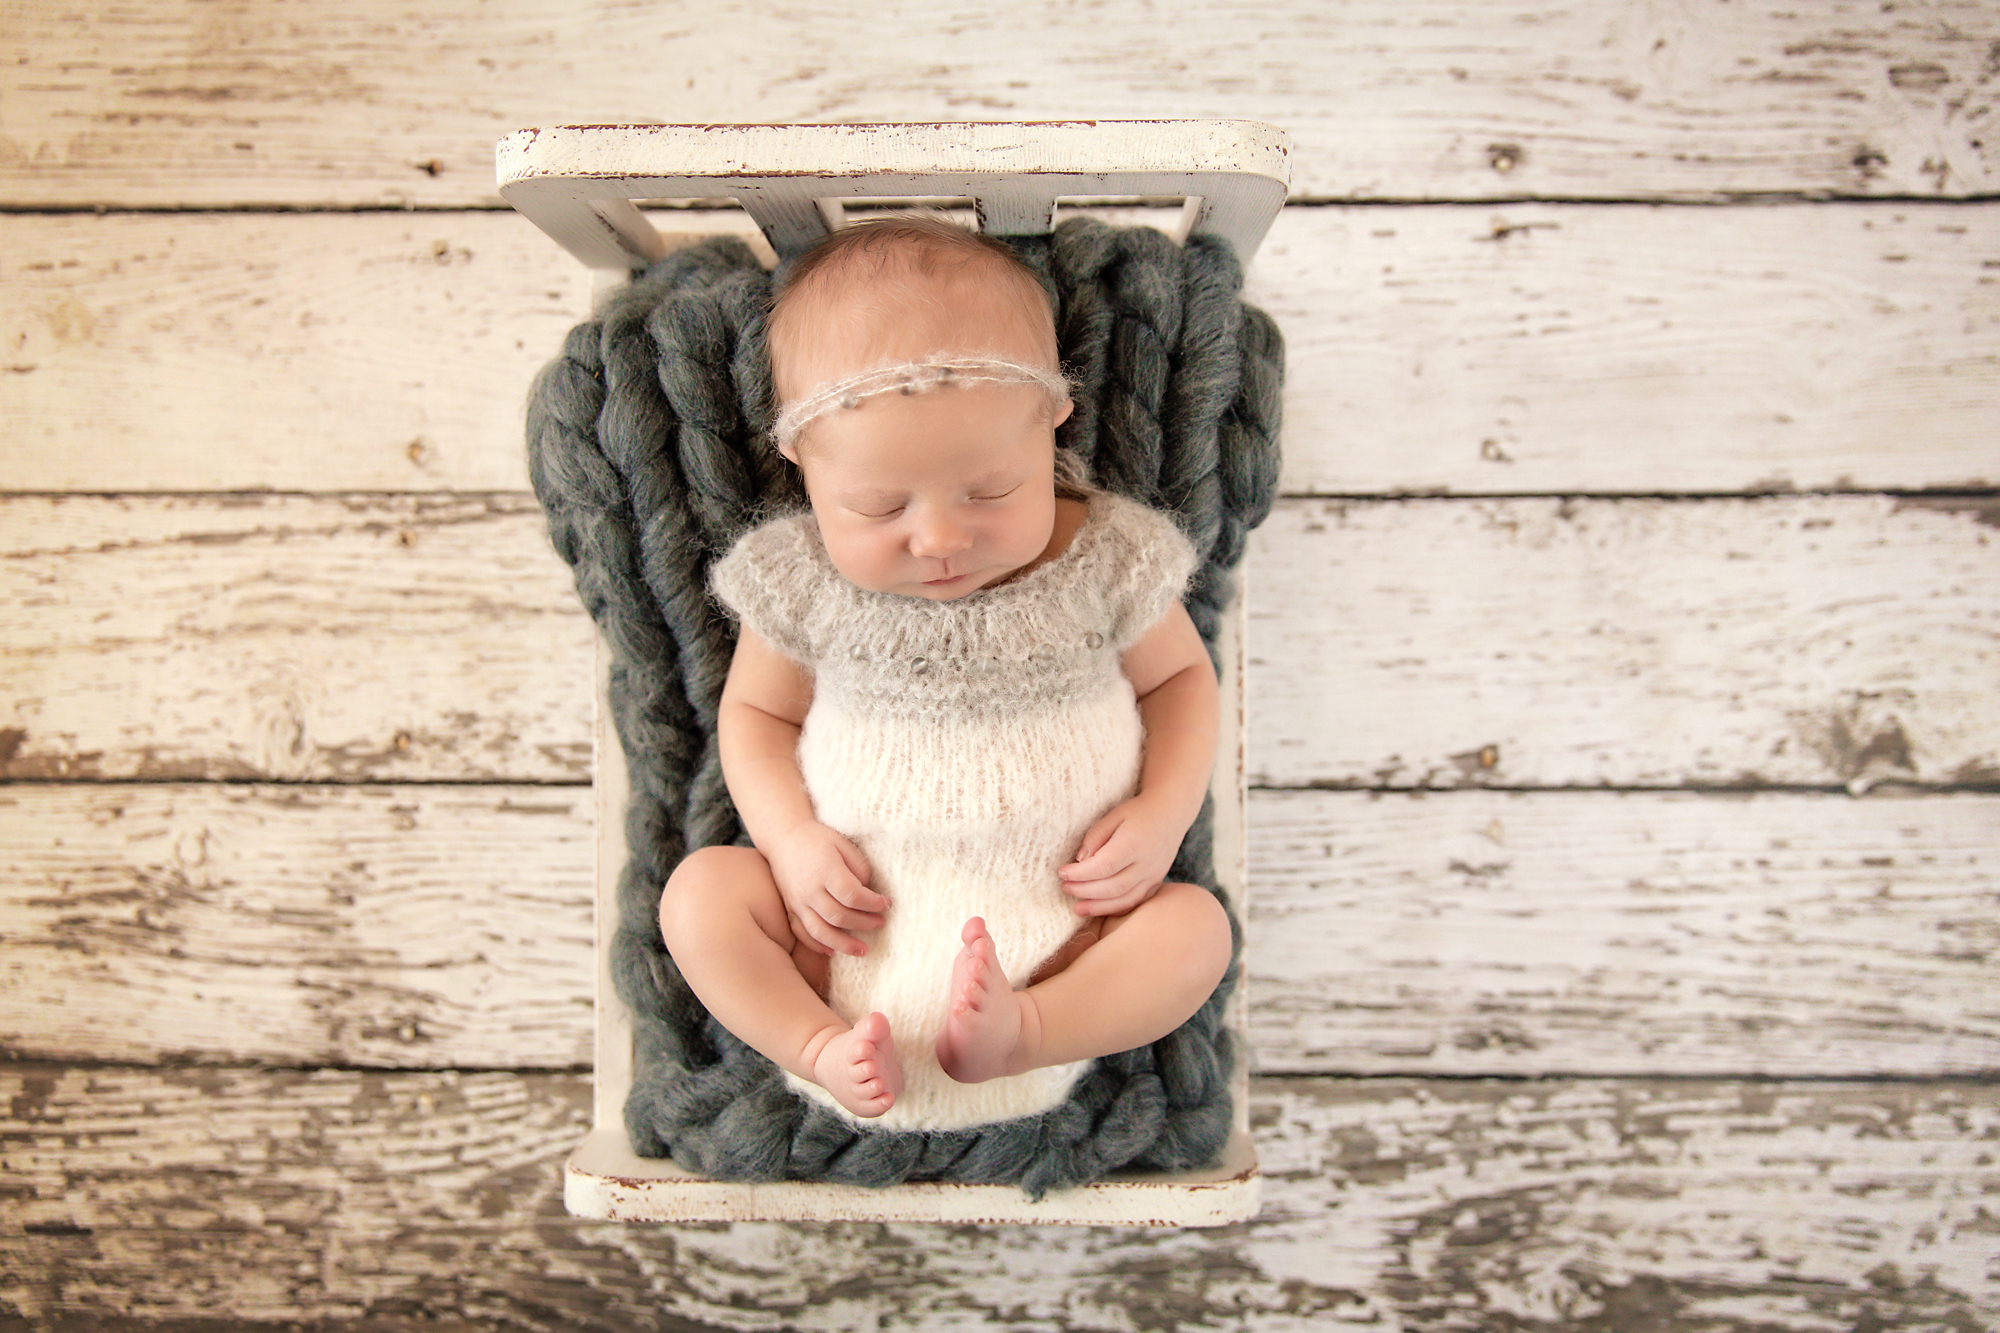 Newborn Photoshoot inspiration ideas. Calgary and Airdrie, Alberta Newborn and Baby photographer - Milashka Photography. Baby girl is posed on a wooden white bed and is propped by a grey bump blanket and is wearing a cute white and grey knitted outfit.